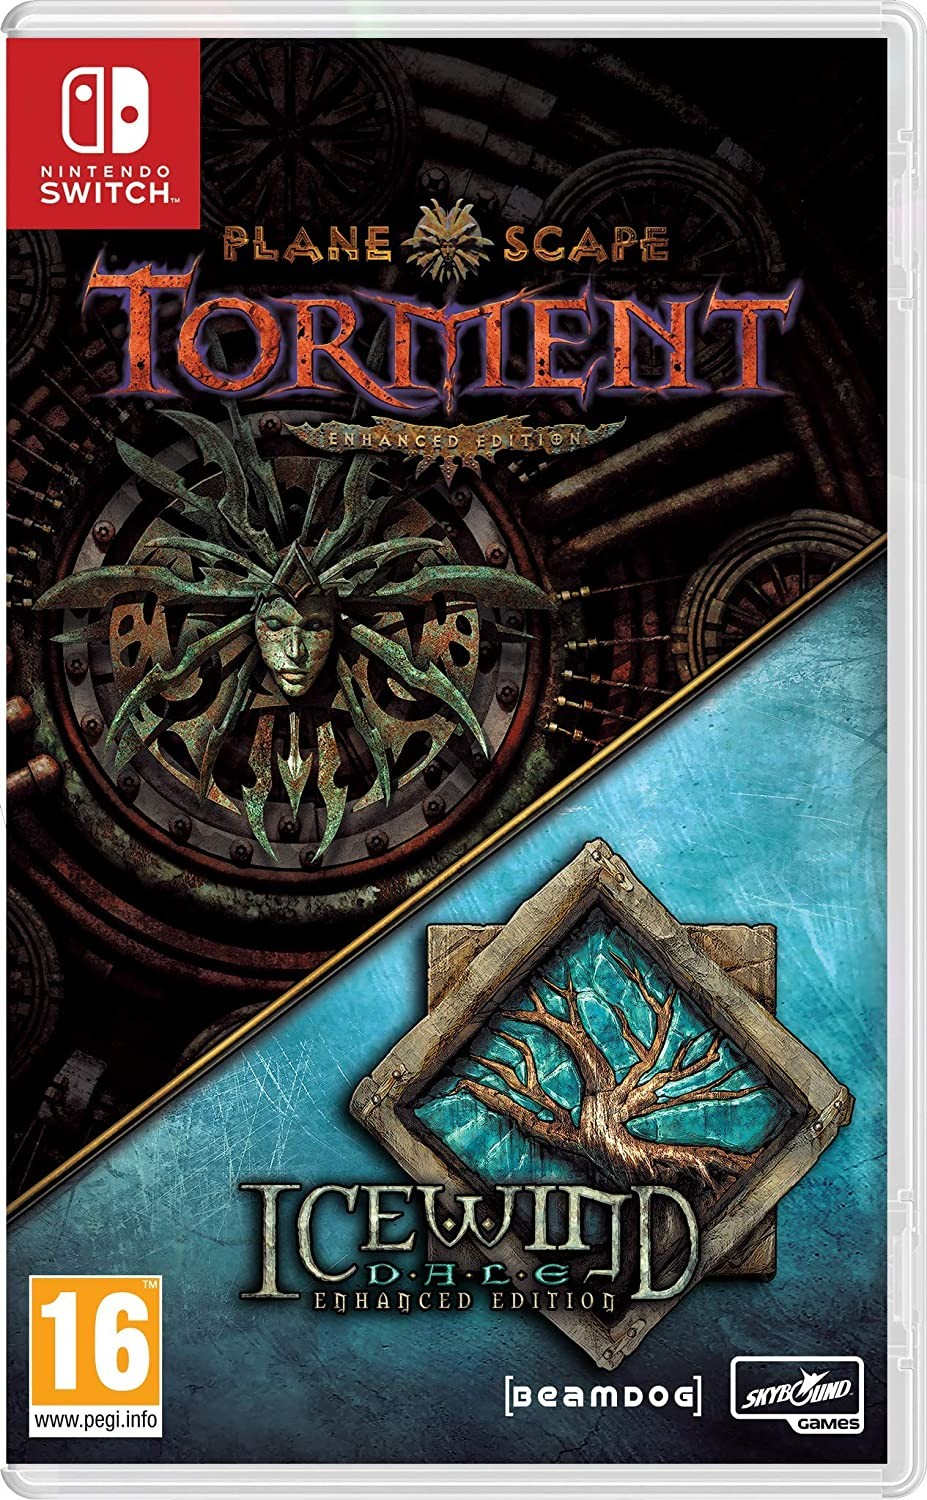 Planescape: Torment and Icewind Dale: Enhanced Editions SWITCH